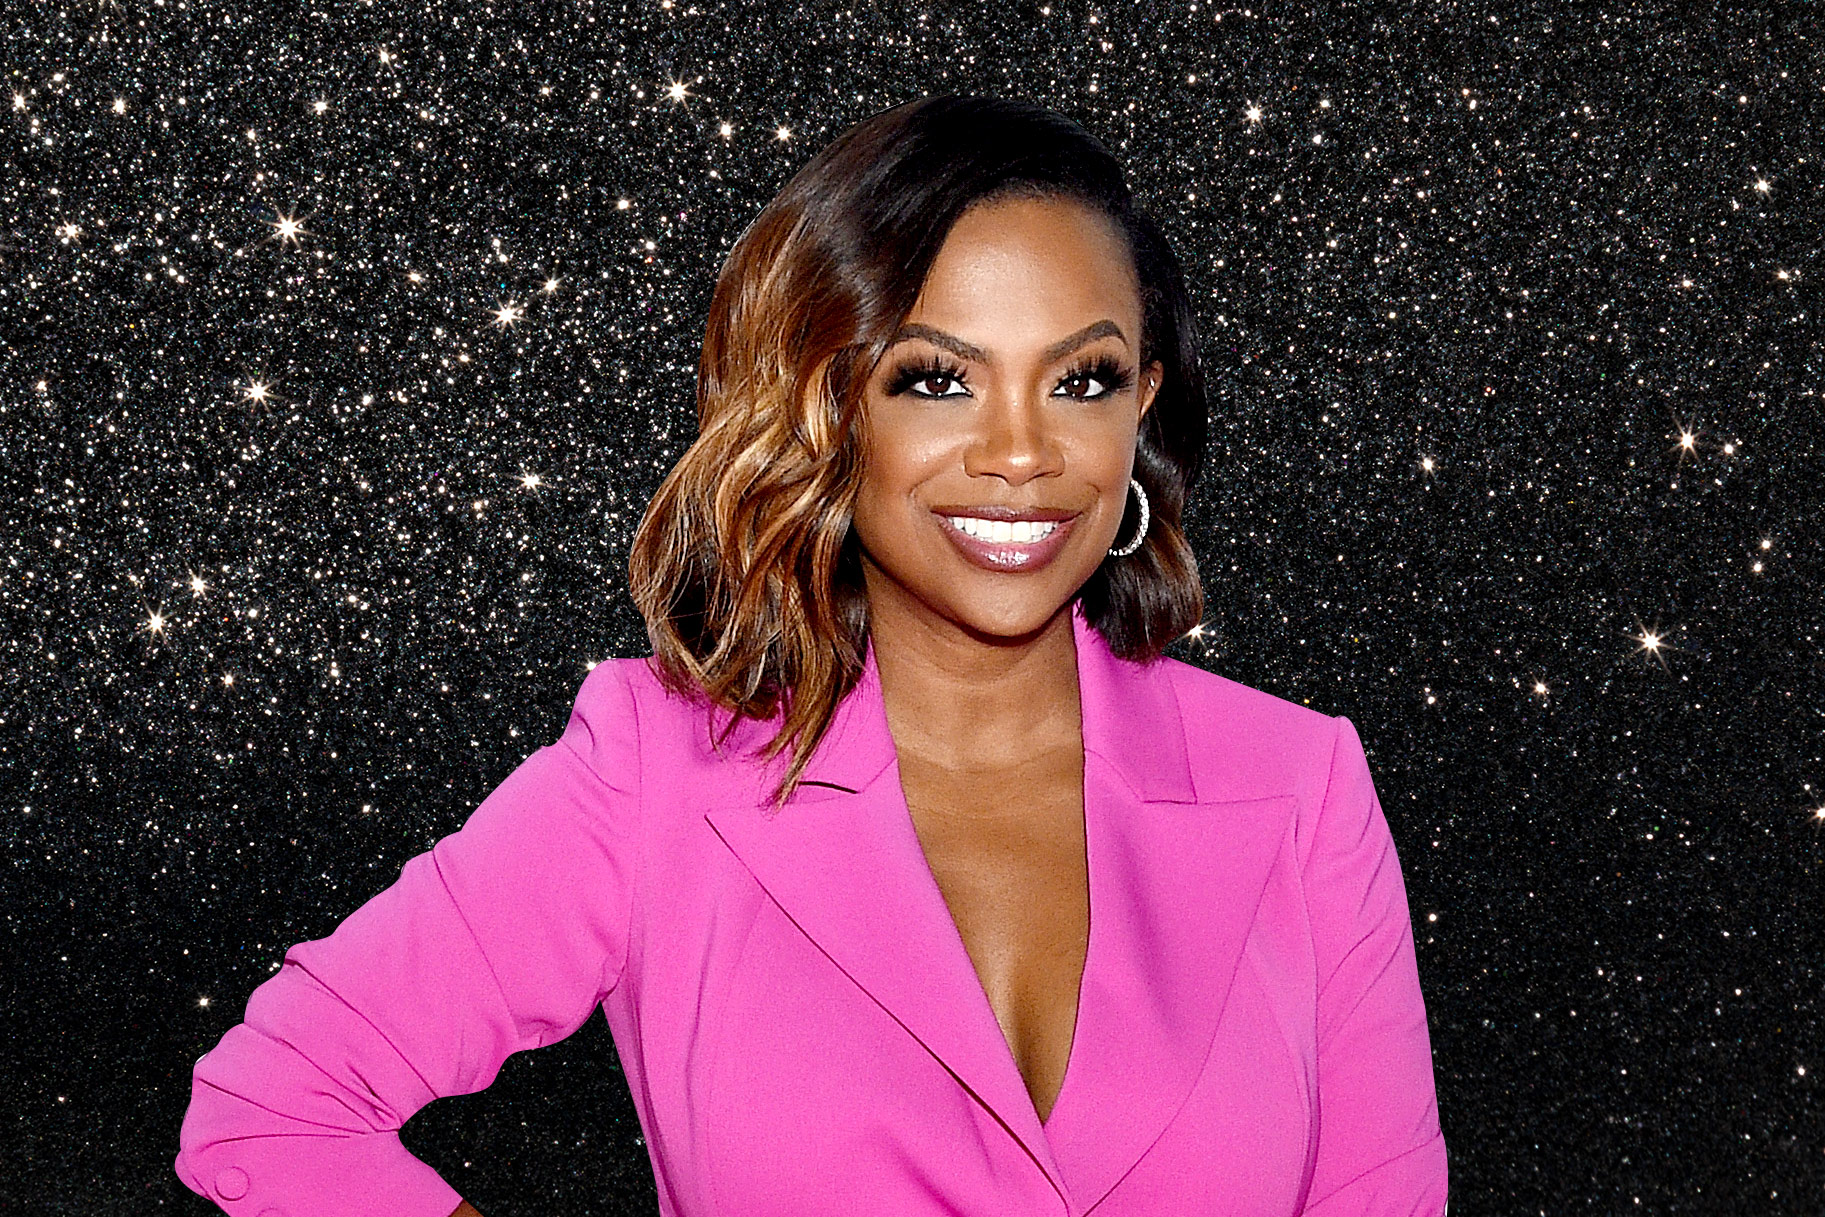 kandi-burruss-is-loving-the-skin-shes-into-check-out-her-gorgeous-look-here